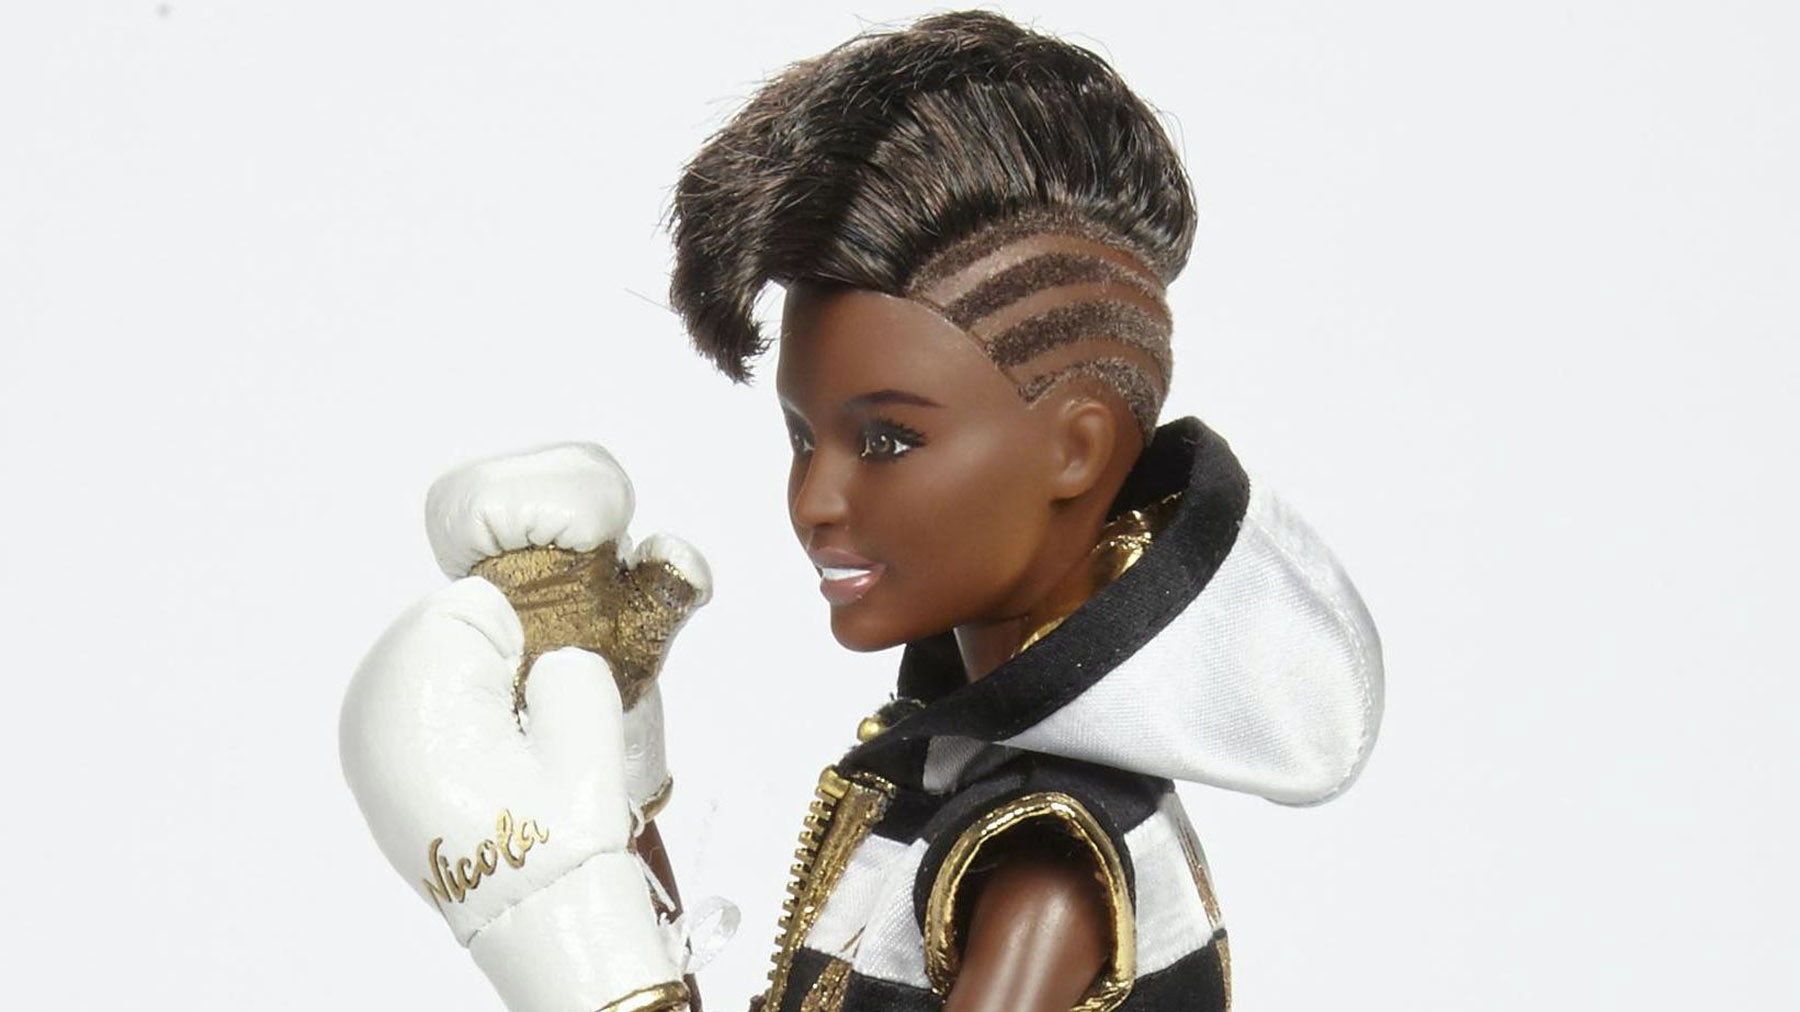 'Boxer Barbie' honouring boxing champion Nicola Adams | Source: Barbie